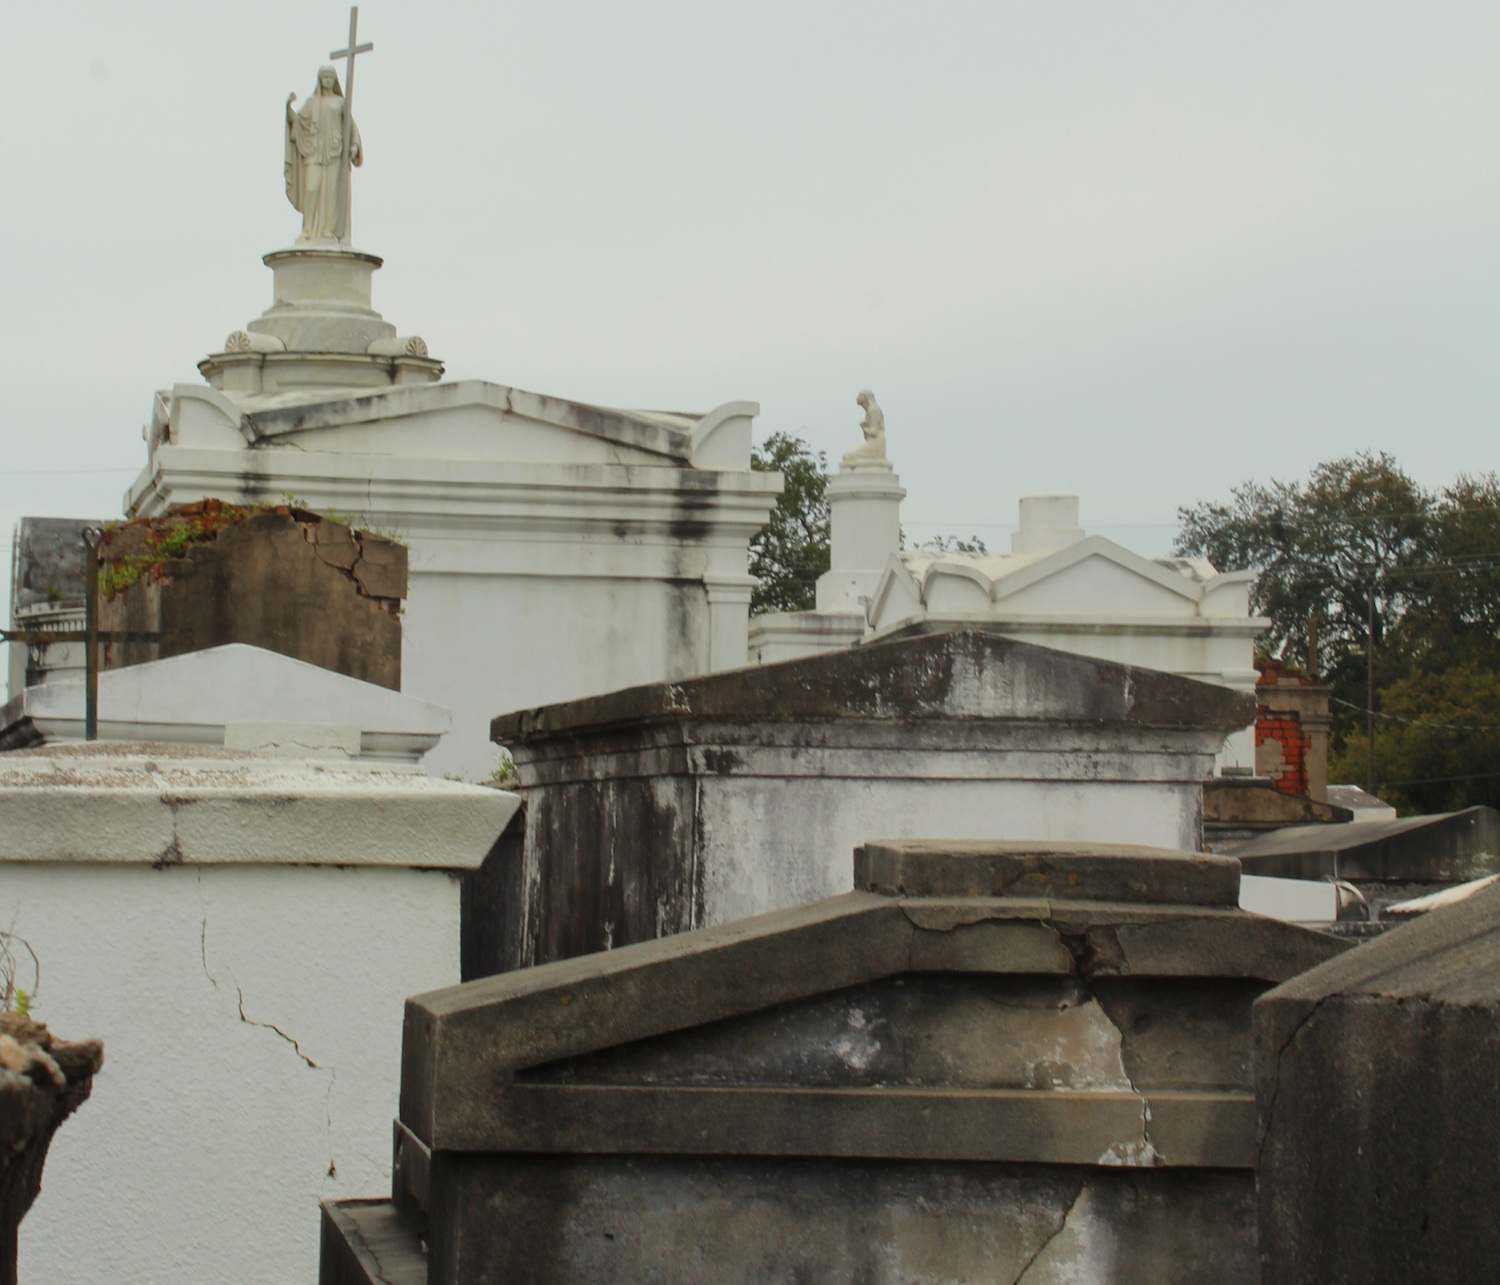 St Louis Cemetery #1 can only be visited with a tour group